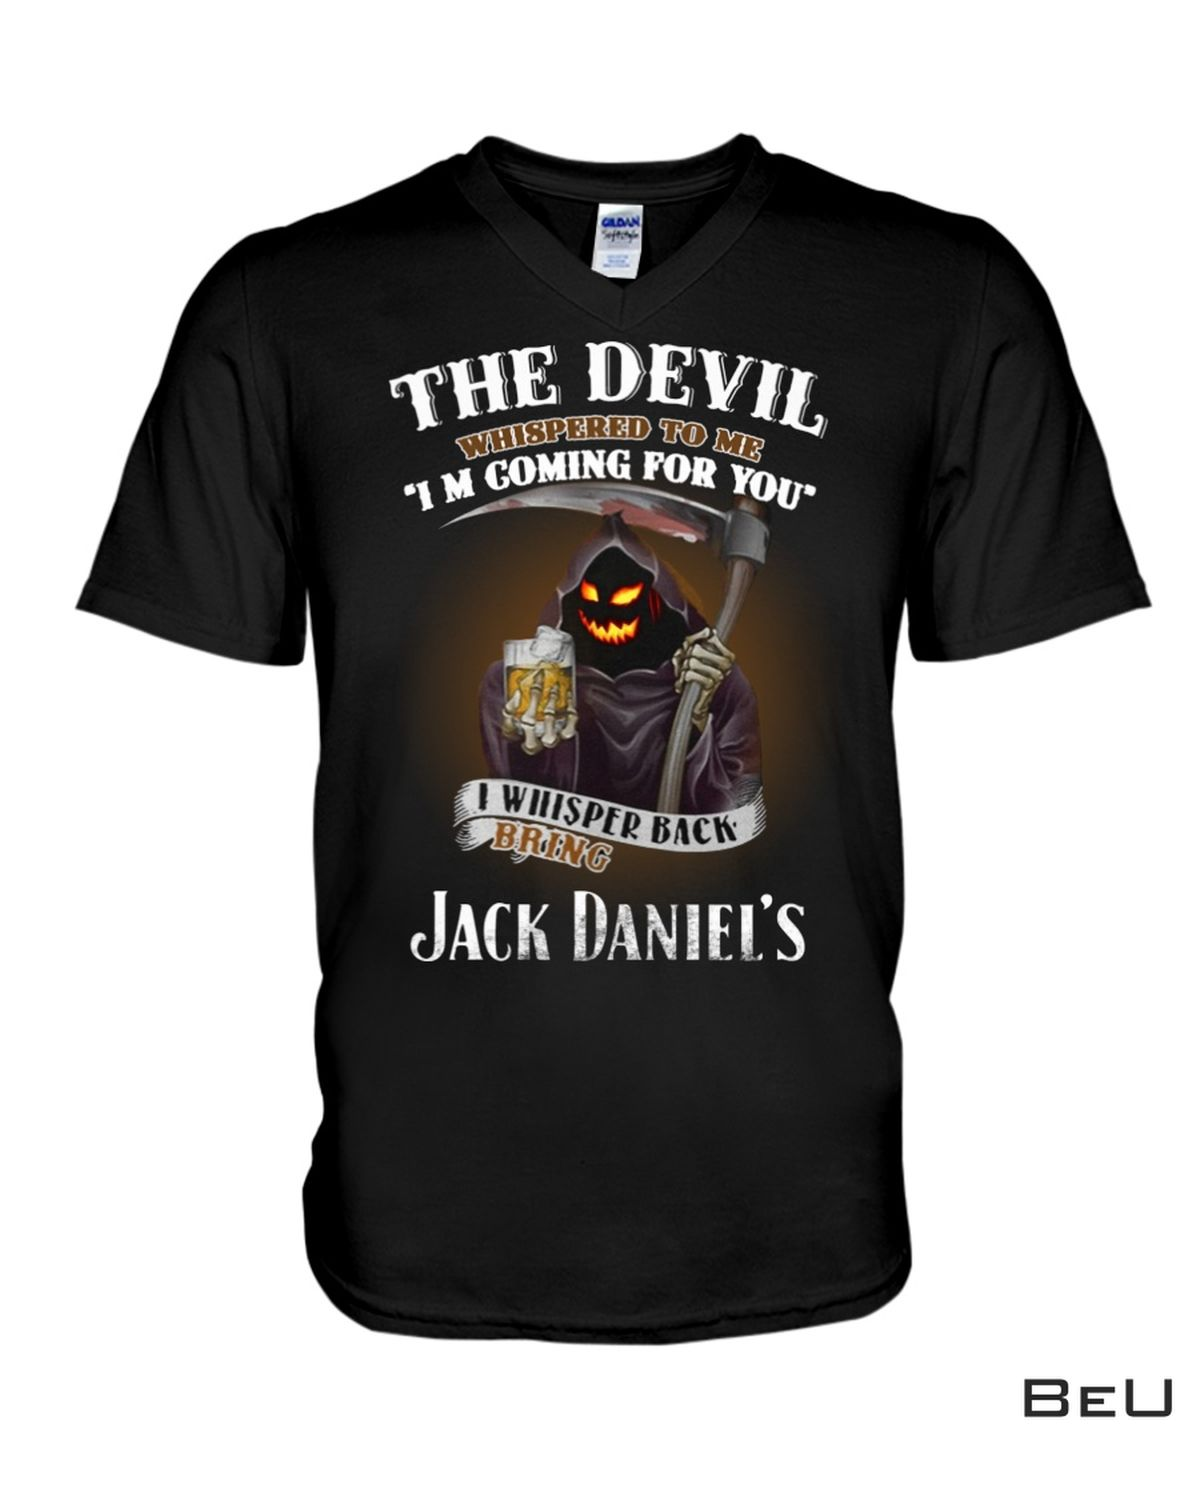 Drop Shipping The Devil Whispered To Me I'm Coming For You Jack Daniel's Shirt